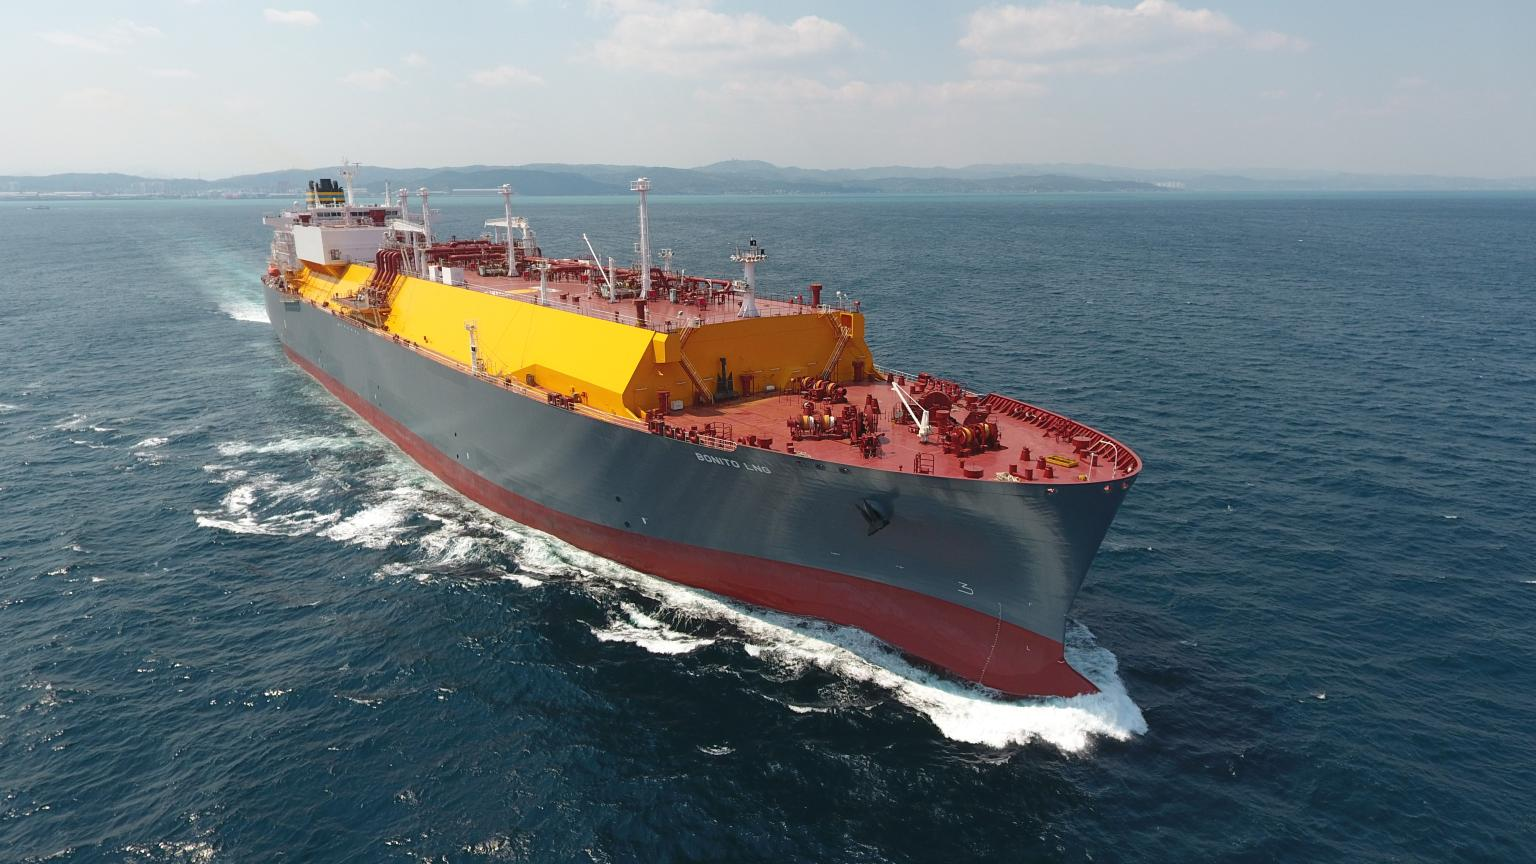 Bonito LNG carrier